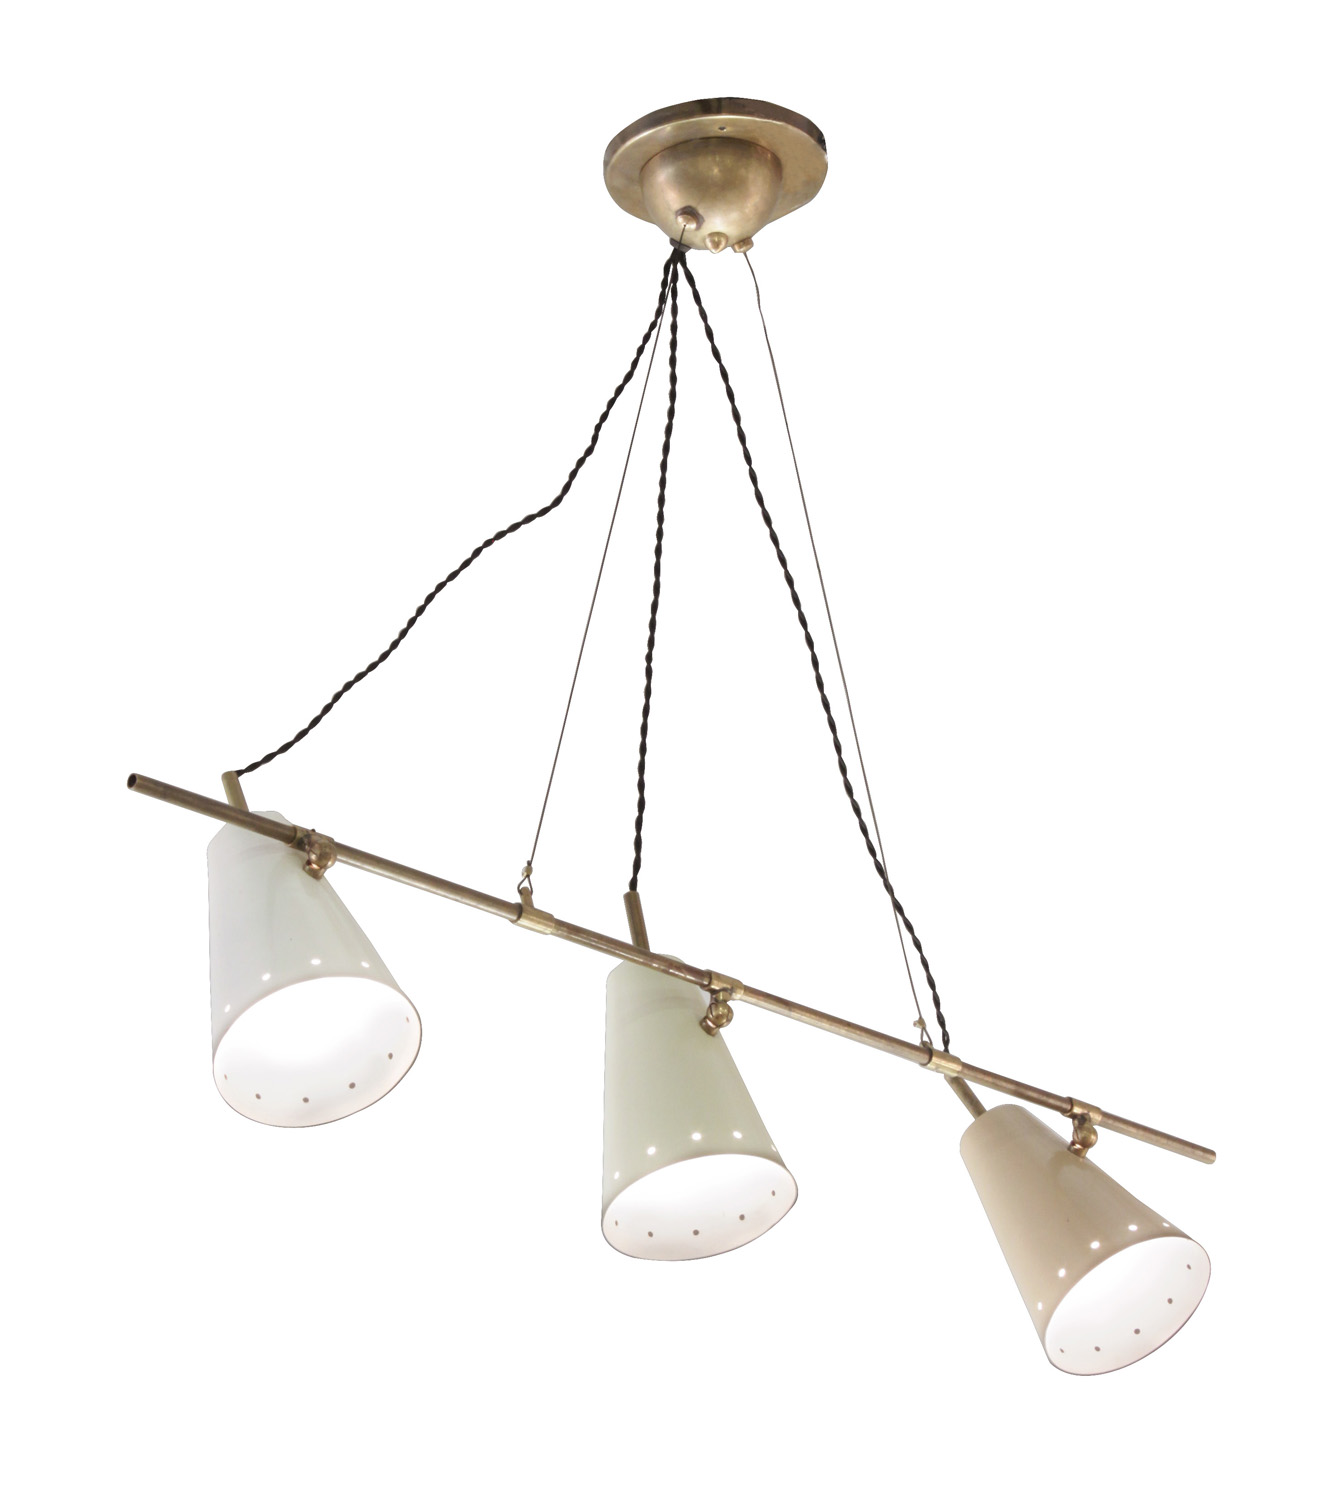 Arredoluce 55 cone shades on rod chandelier208 detail1 hires.jpg